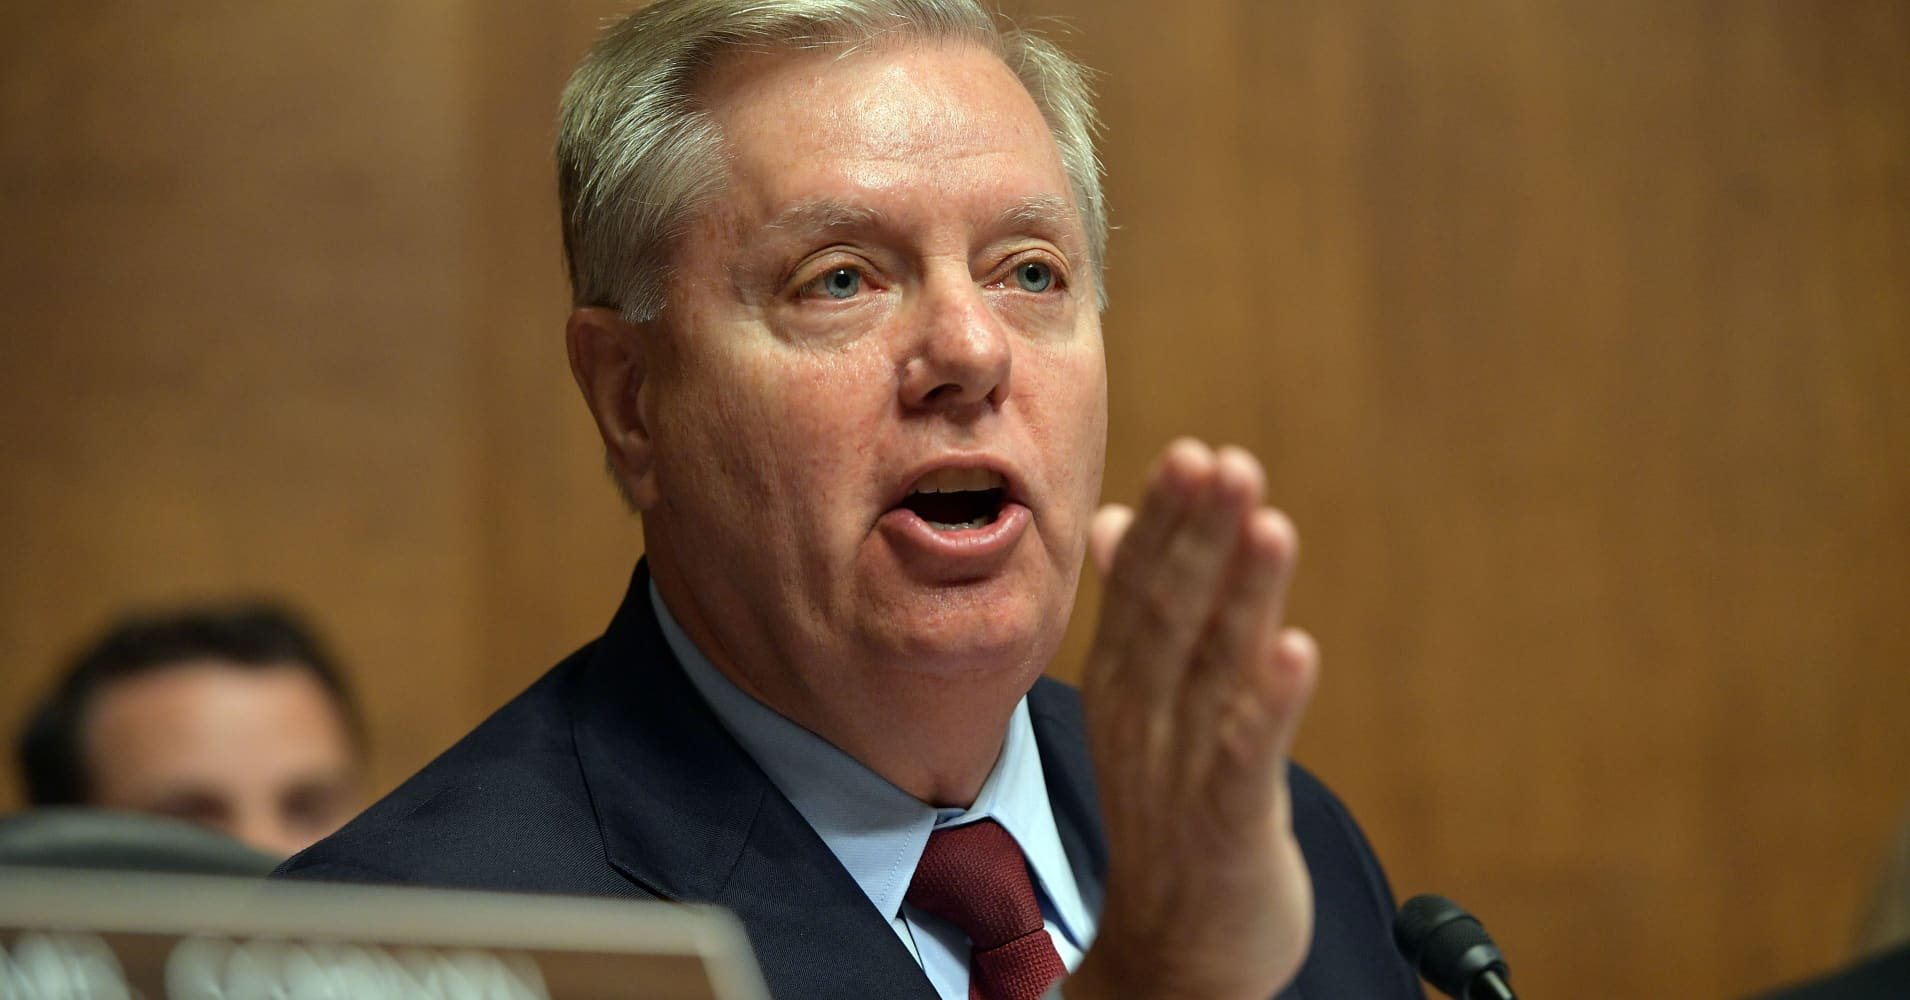 Lindsey Graham: 'There will be holy hell to pay' if Trump fires Sessions